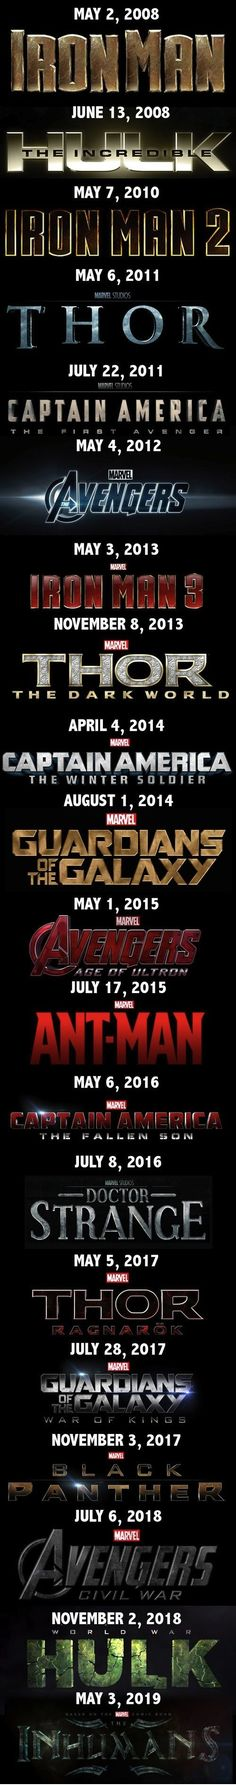 The Marvel Cinematic Universe. SO EXCITED!!!!! <<<<<< OMG OMG OMG OMG OMG OMG OMG OMG OMG!!!!!!!!!!!!! ------ASHLDJKSADHJGKLFG I......I dont.......uhhhh.......this......is...... ge-ge-geek overlo-o-o-oad...... holy....ASKLFH......crap.......I need a paper bag, I think Im hyperventilating.......